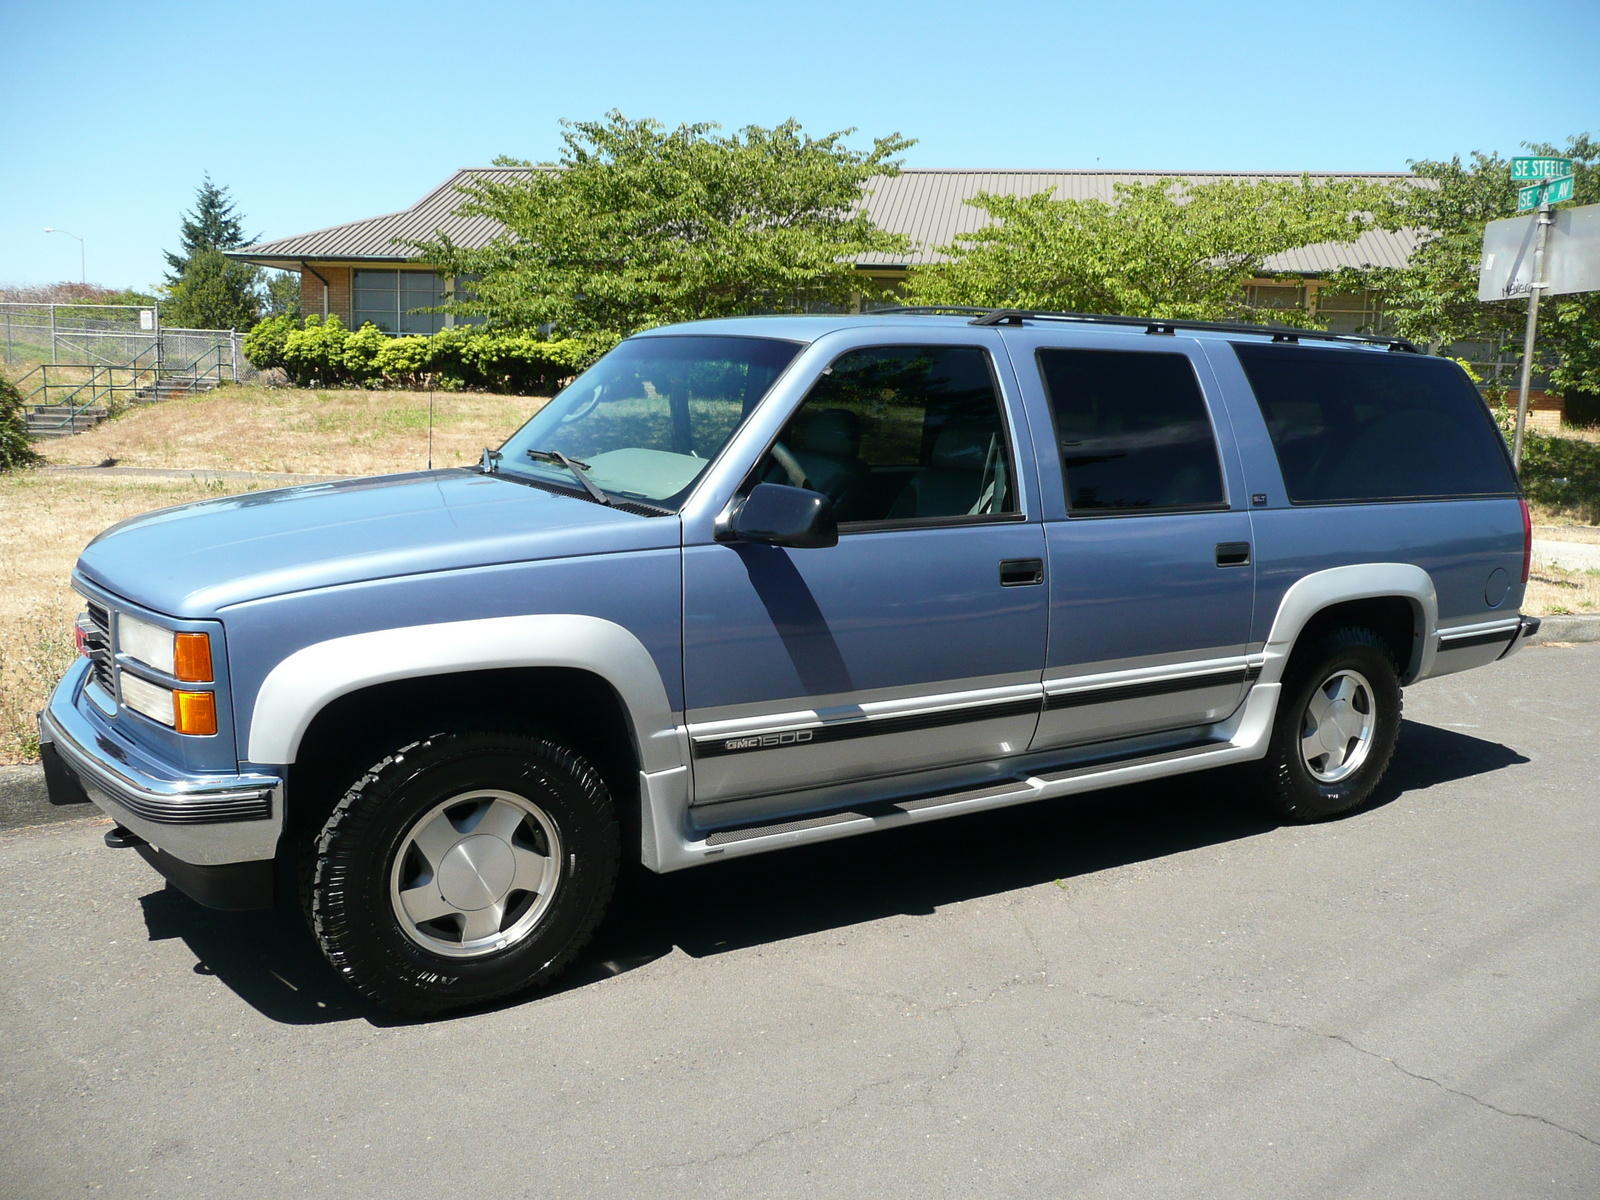 Gmc Yukon additionally Chevrolet Silverado in addition Gmc Int W likewise Gmc Suburban Dr K Wd Suv Pic besides Chevrolet Astro. on gmc suburban 5 7 1996 specs and images